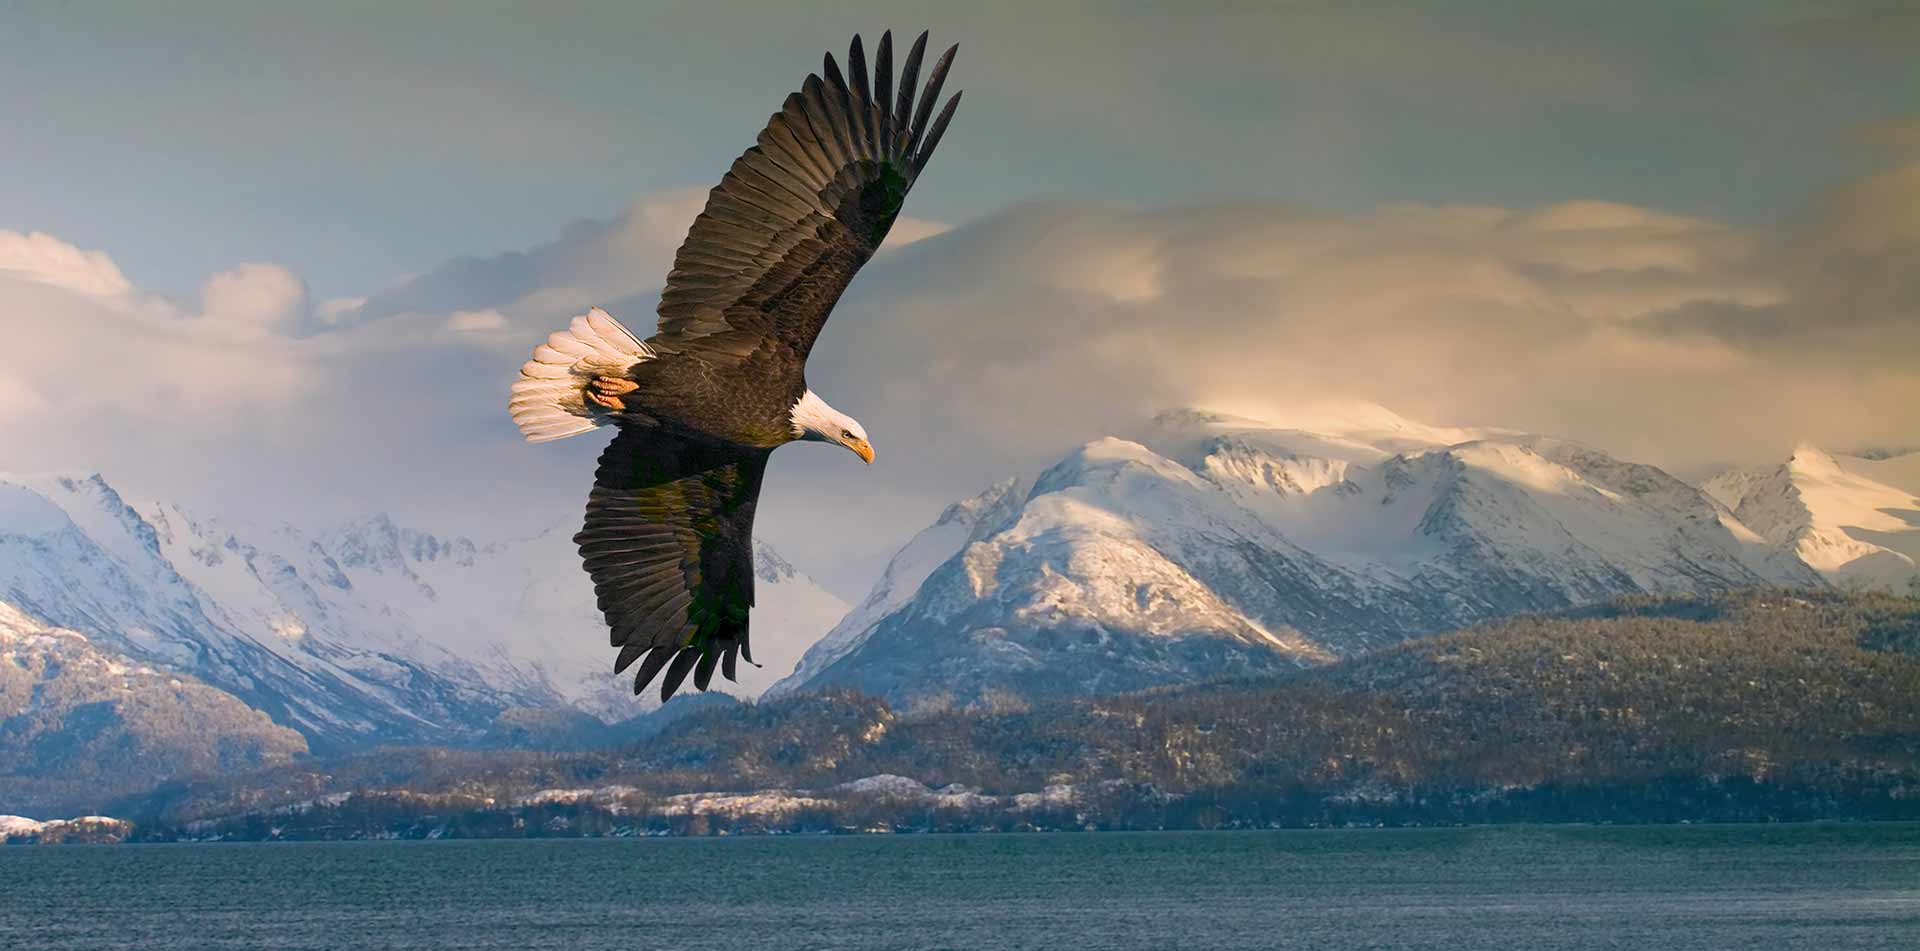 North America United States Alaska Kenai Denali mountain lake wildlife bald eagle fly - luxury vacation destinations